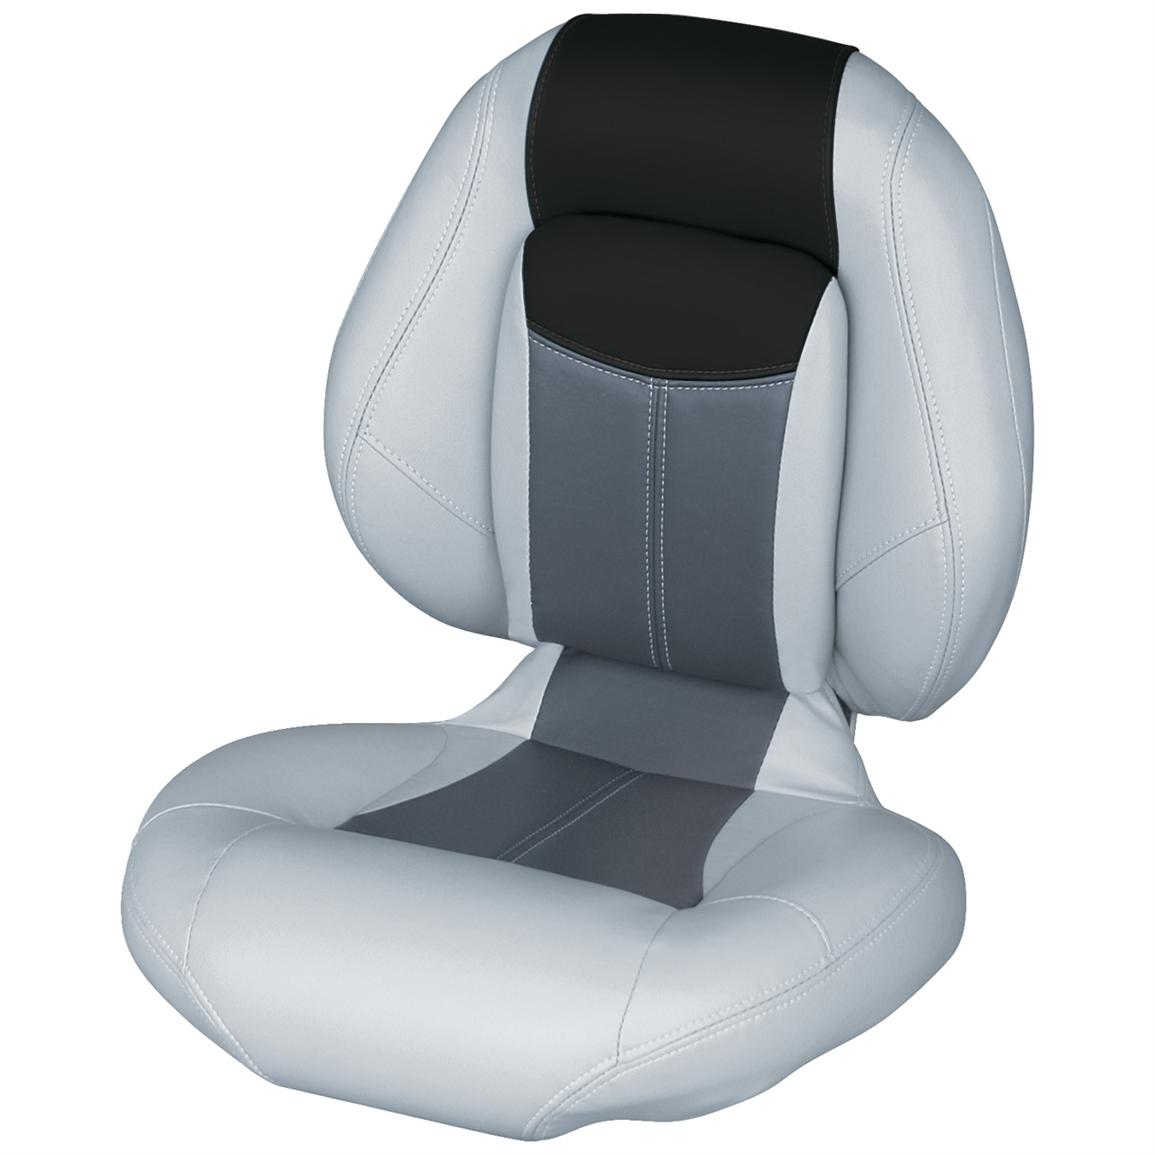 Wise® Blast-Off™ Series Centric 1 Folding Boat Seat, Grey / Charcoal / Black